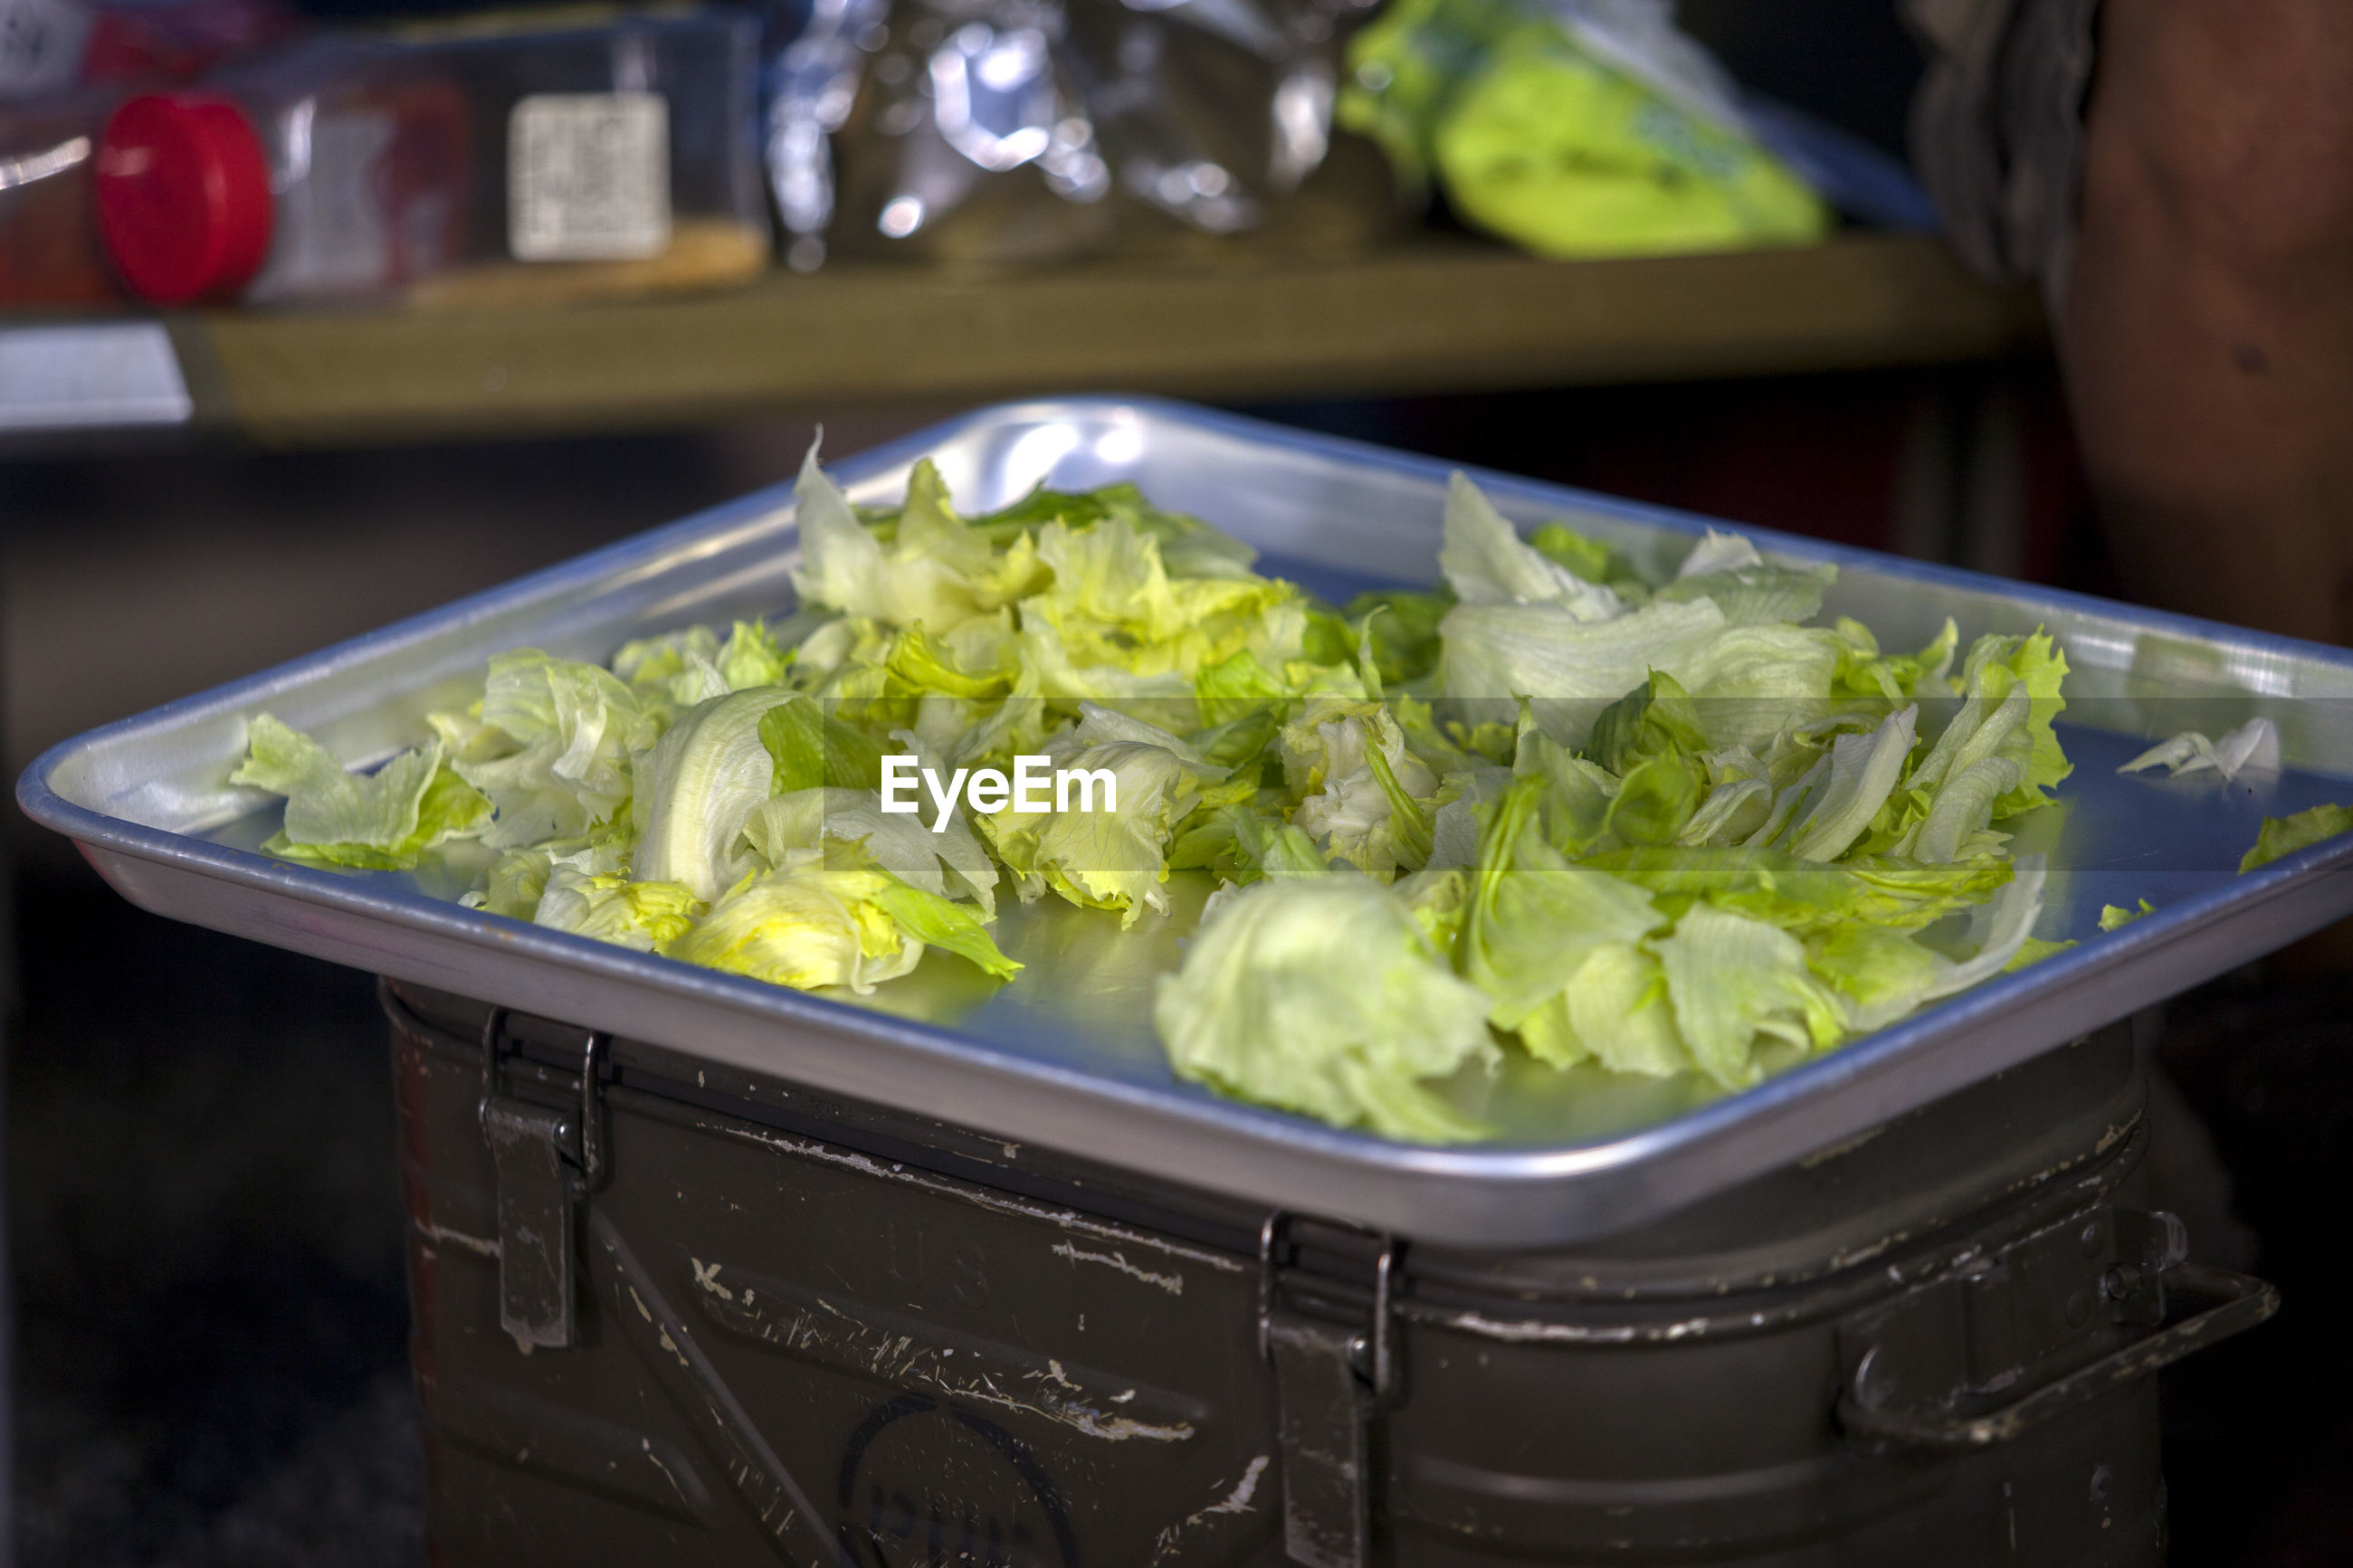 Close-up of lettuce in tray on container at yard